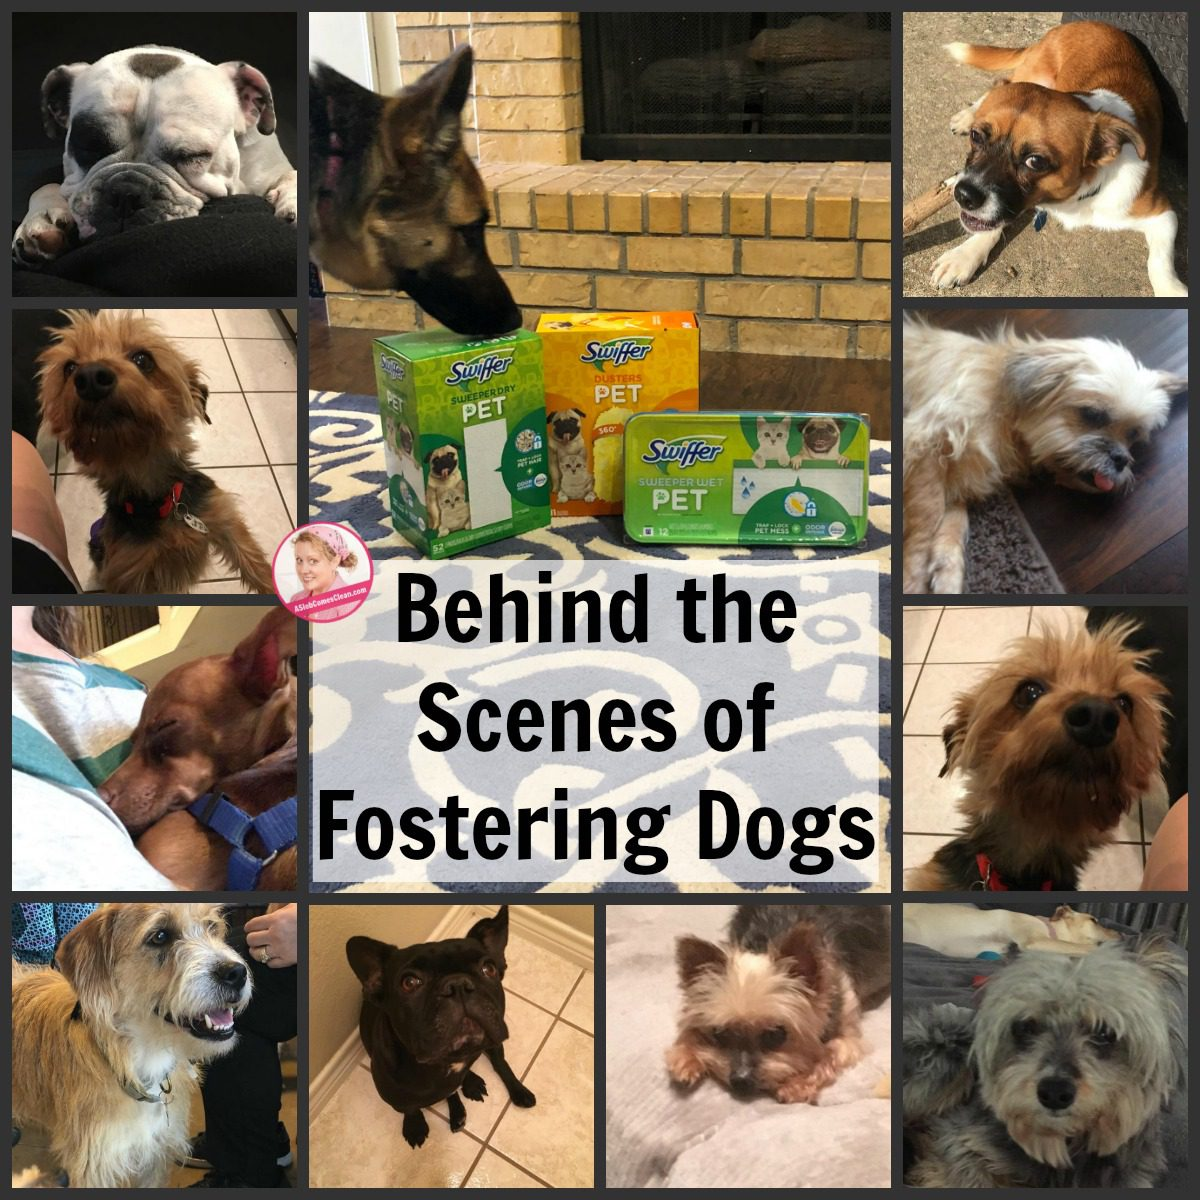 Behind the Scenes of Fostering Dogs swiffer pet at ASlobComesClean.com collage